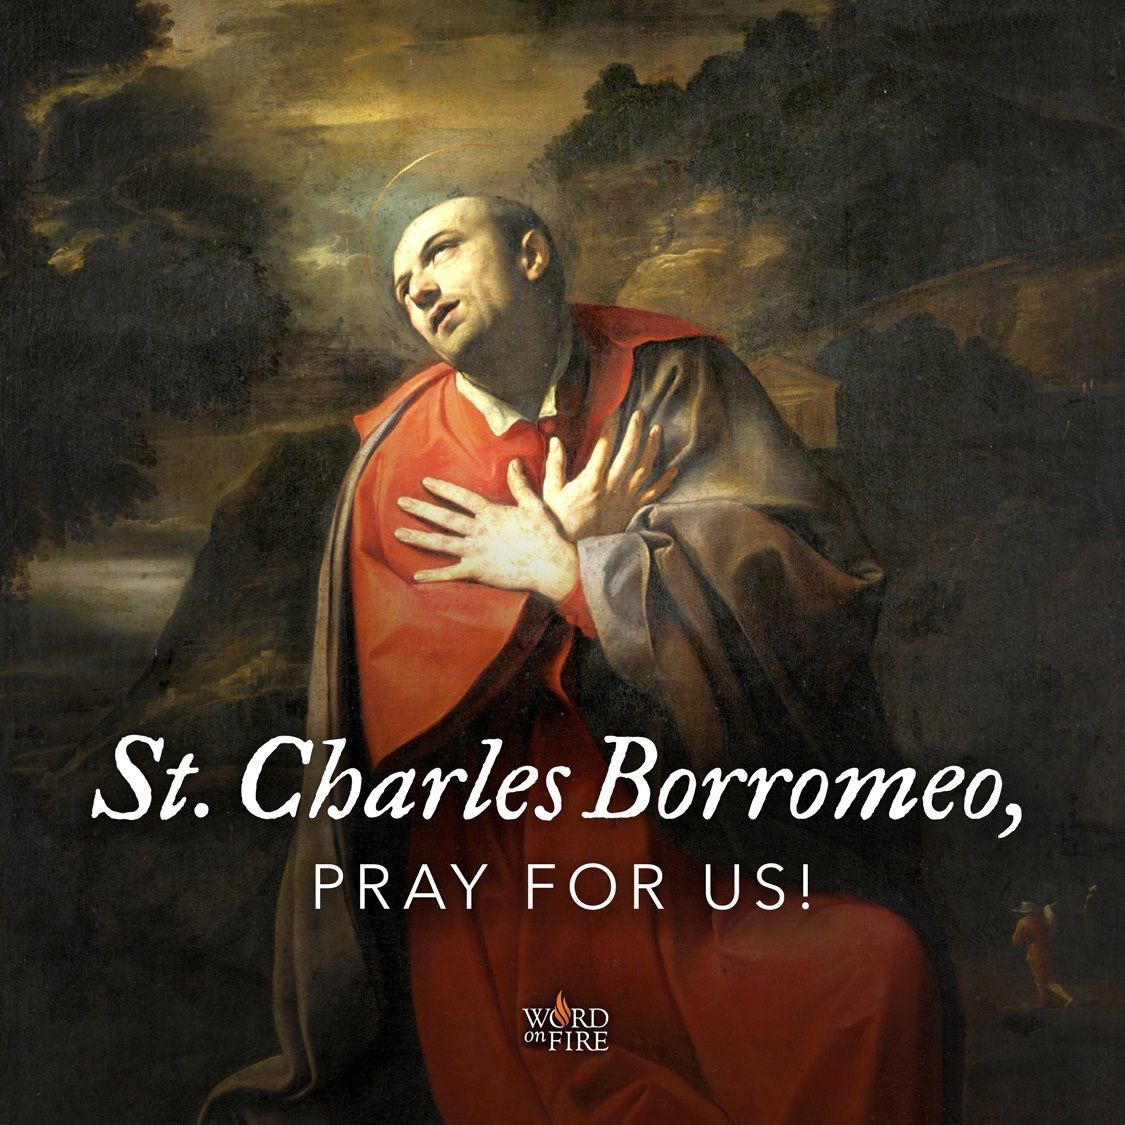 St. Charles Borromeo Pray for us